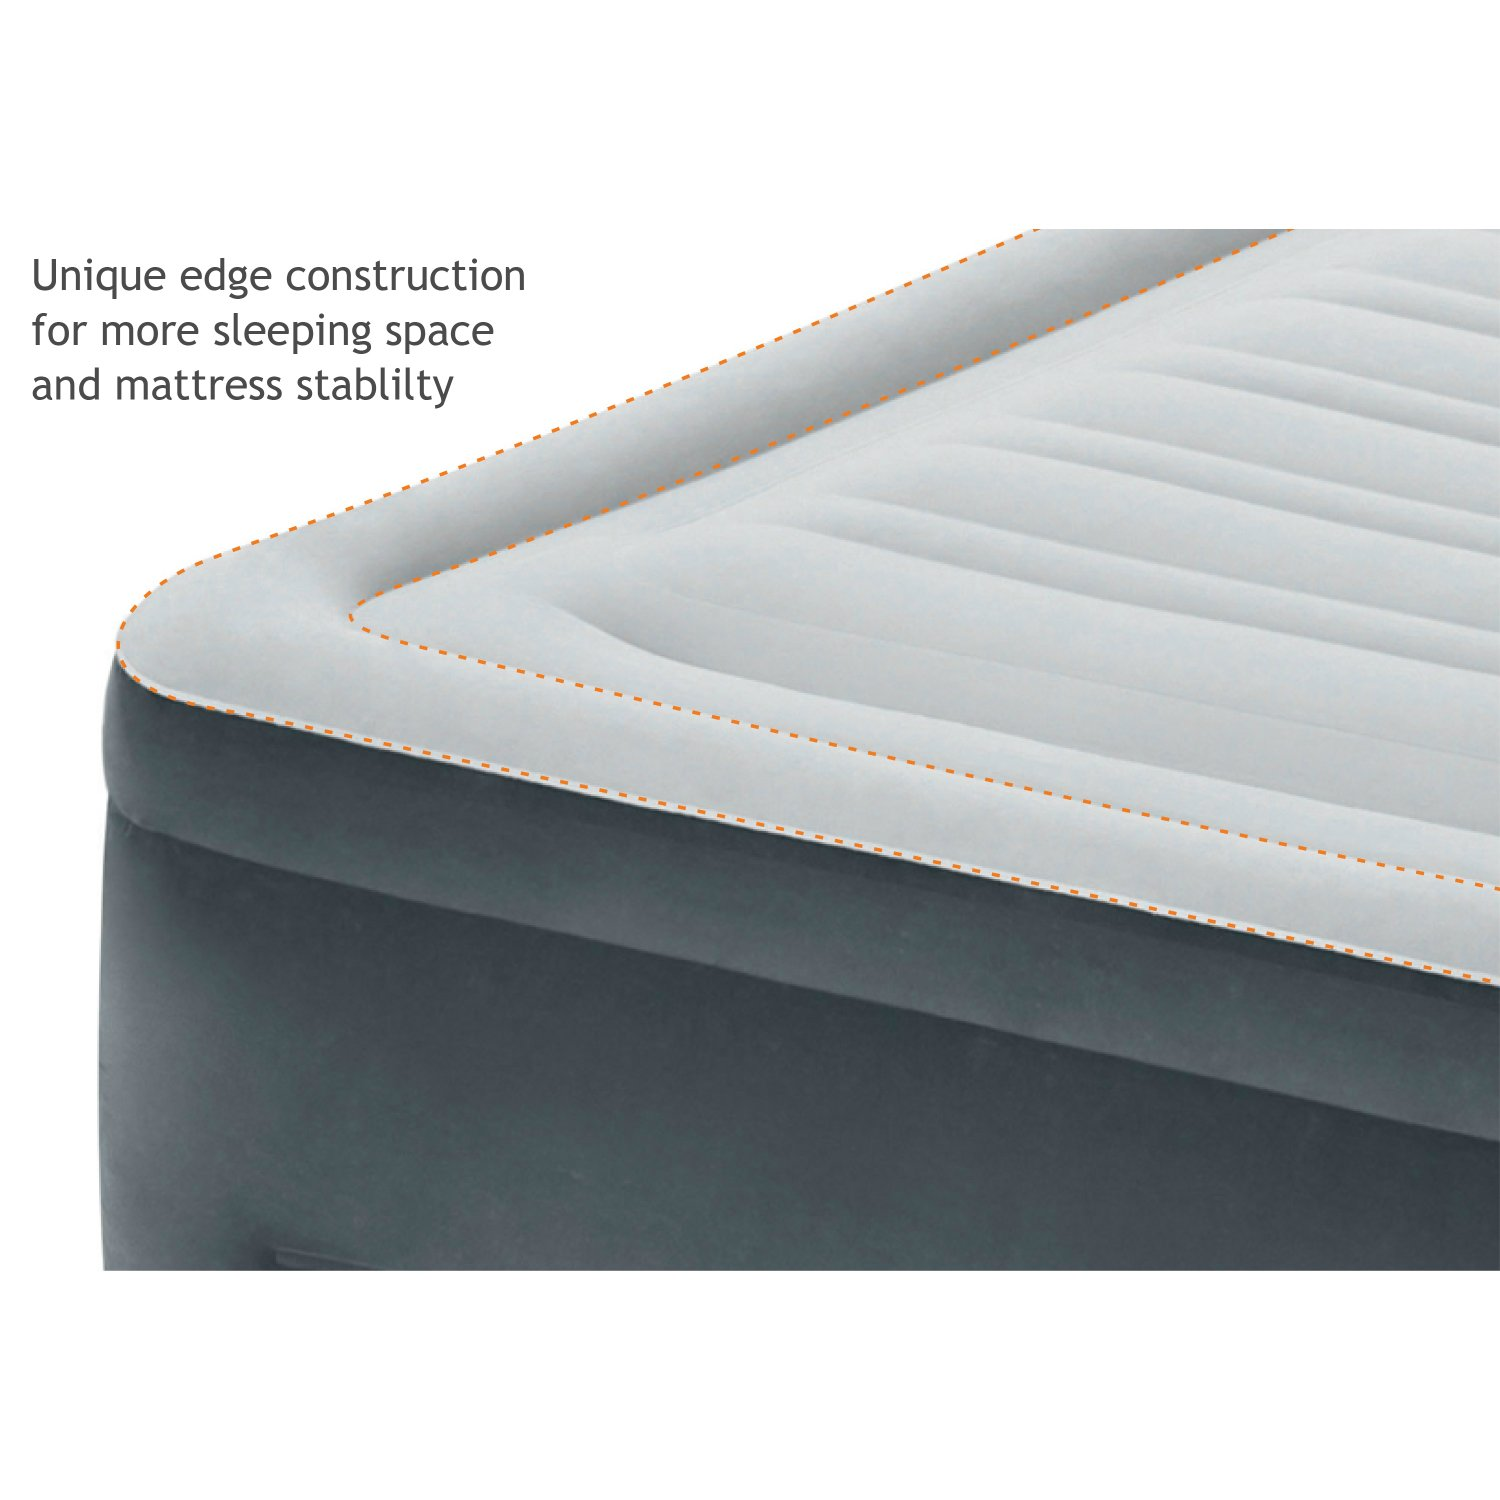 Intex Comfort Plush Elevated Dura-Beam Airbed with Built-in Electric Pump, Bed Height 18'', Twin by Intex (Image #3)